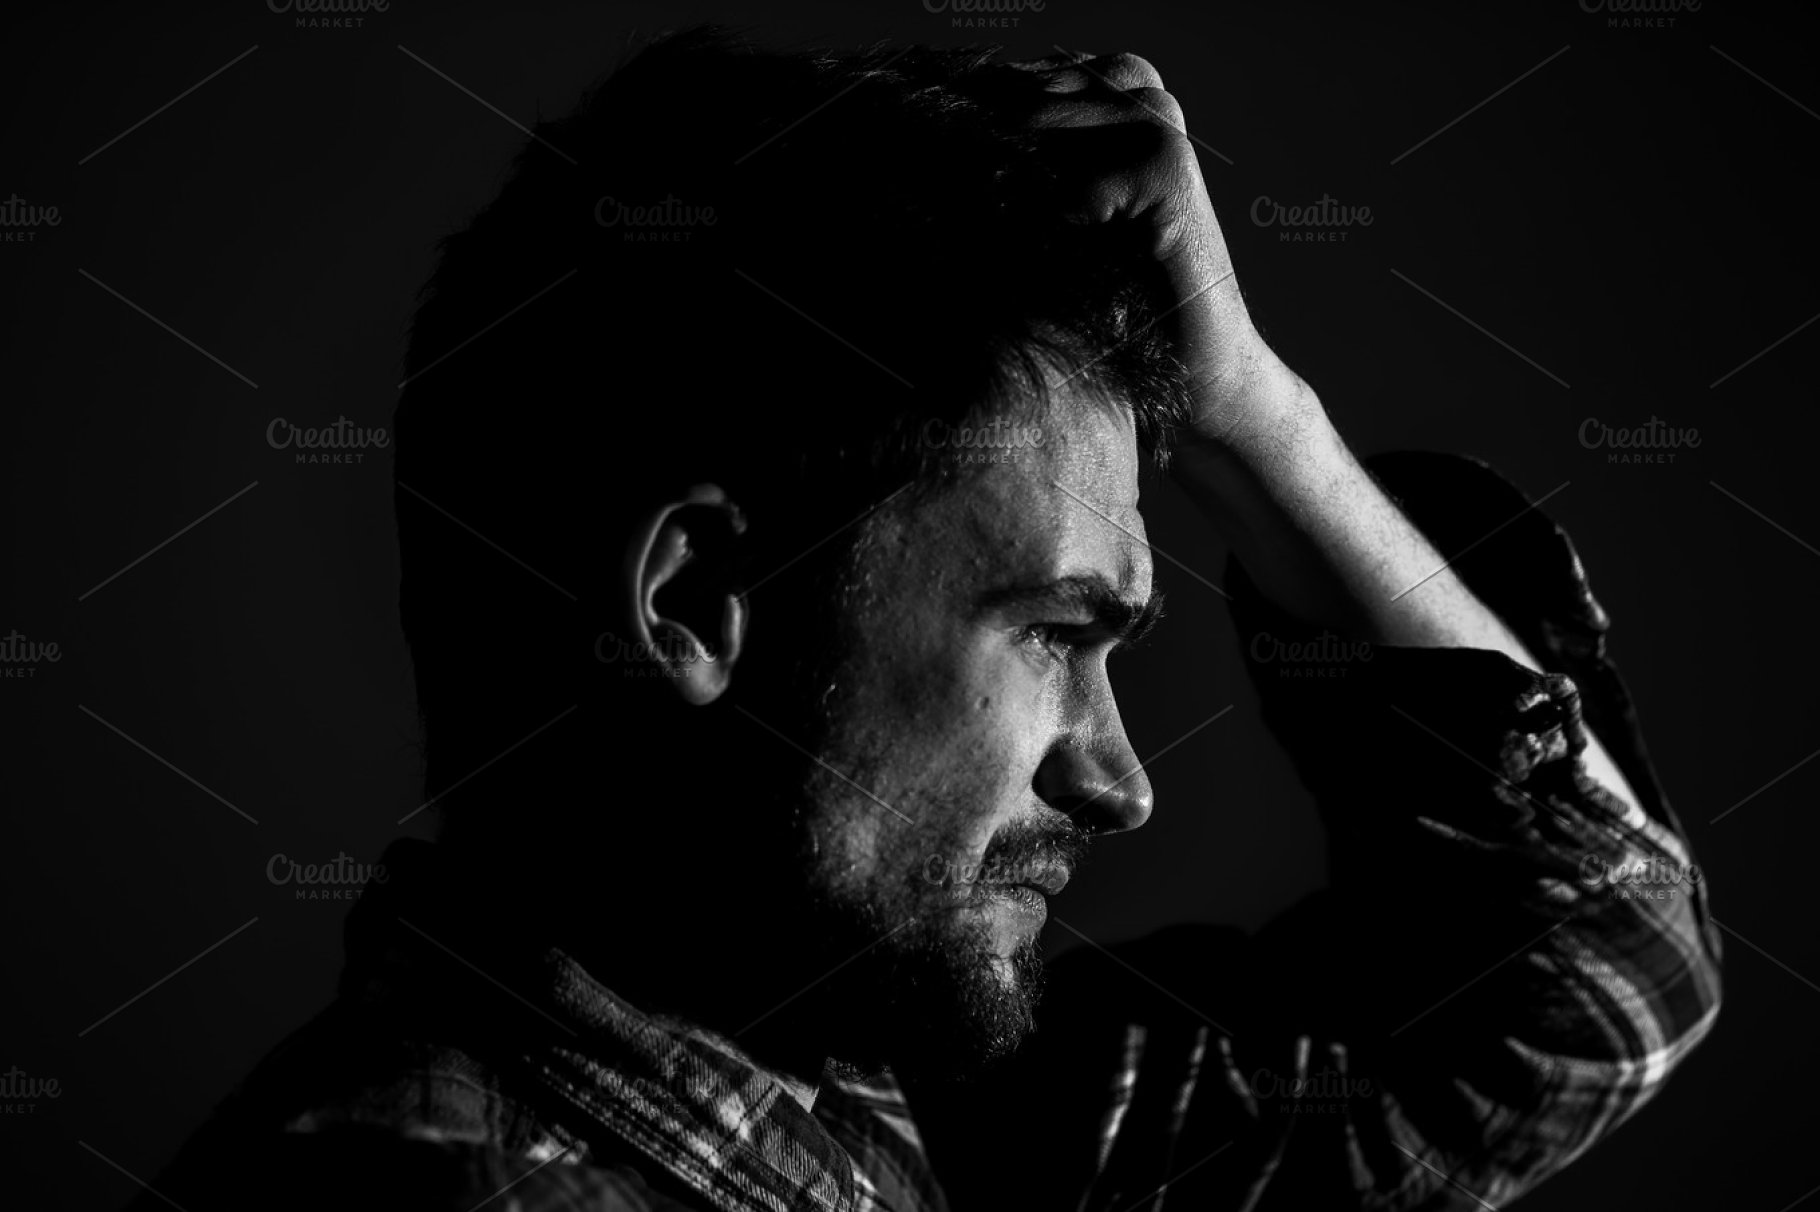 Young man sad emotions black and white photography